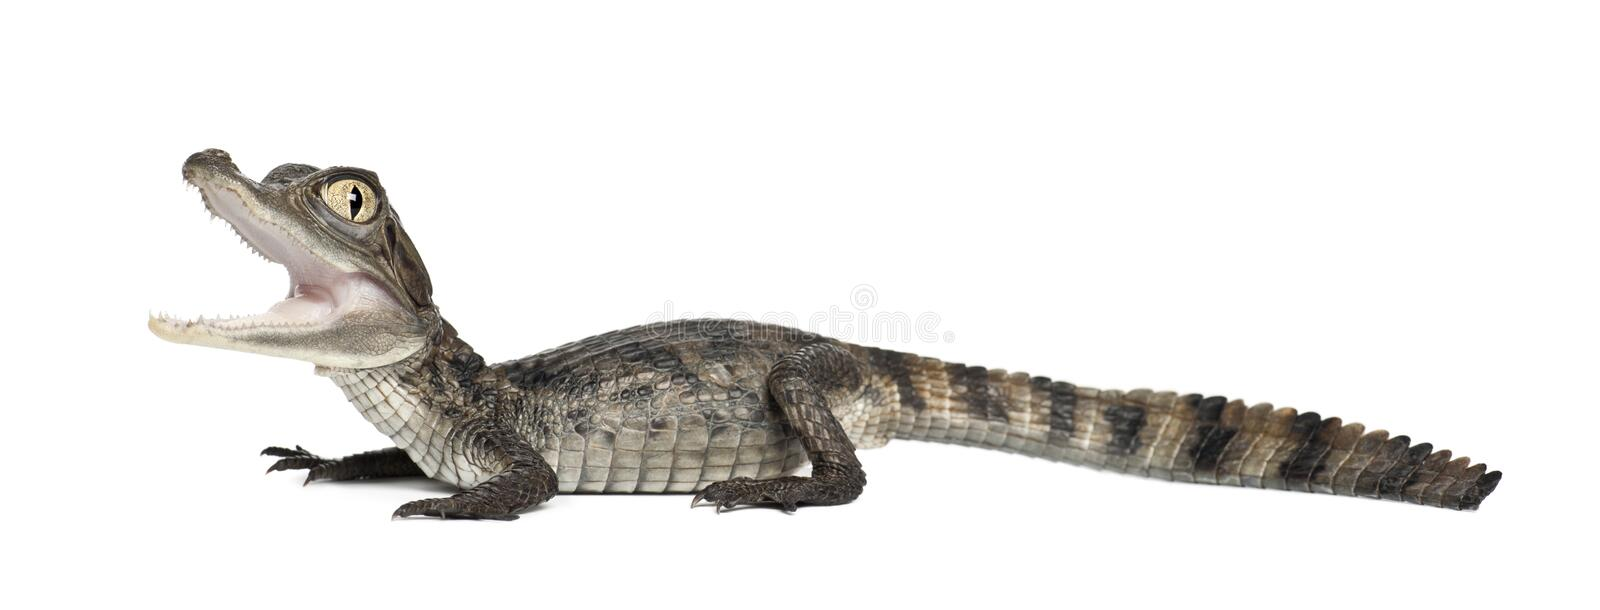 Spectacled Caiman, Caiman crocodilus royalty free stock photography